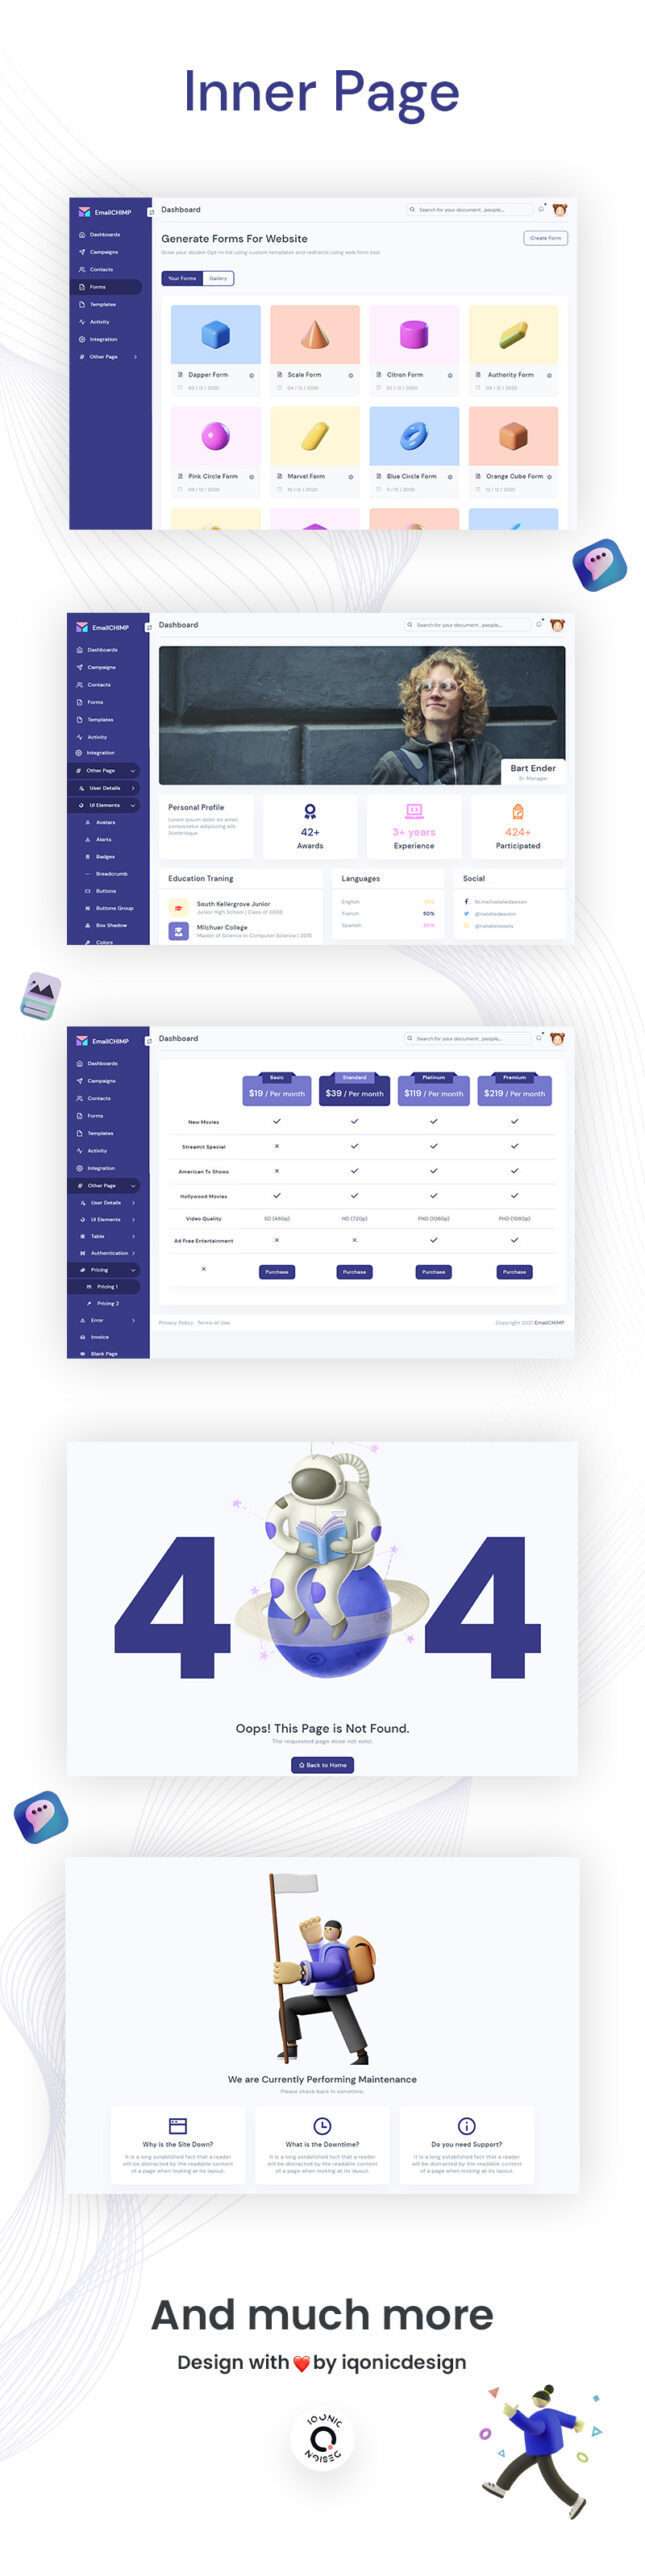 Free HTML Website Template for Email Marketing | EmailChimp Lite | Iqonic Design free email marketing webapp admin template EmailChimp Lite 03 inner pages scaled